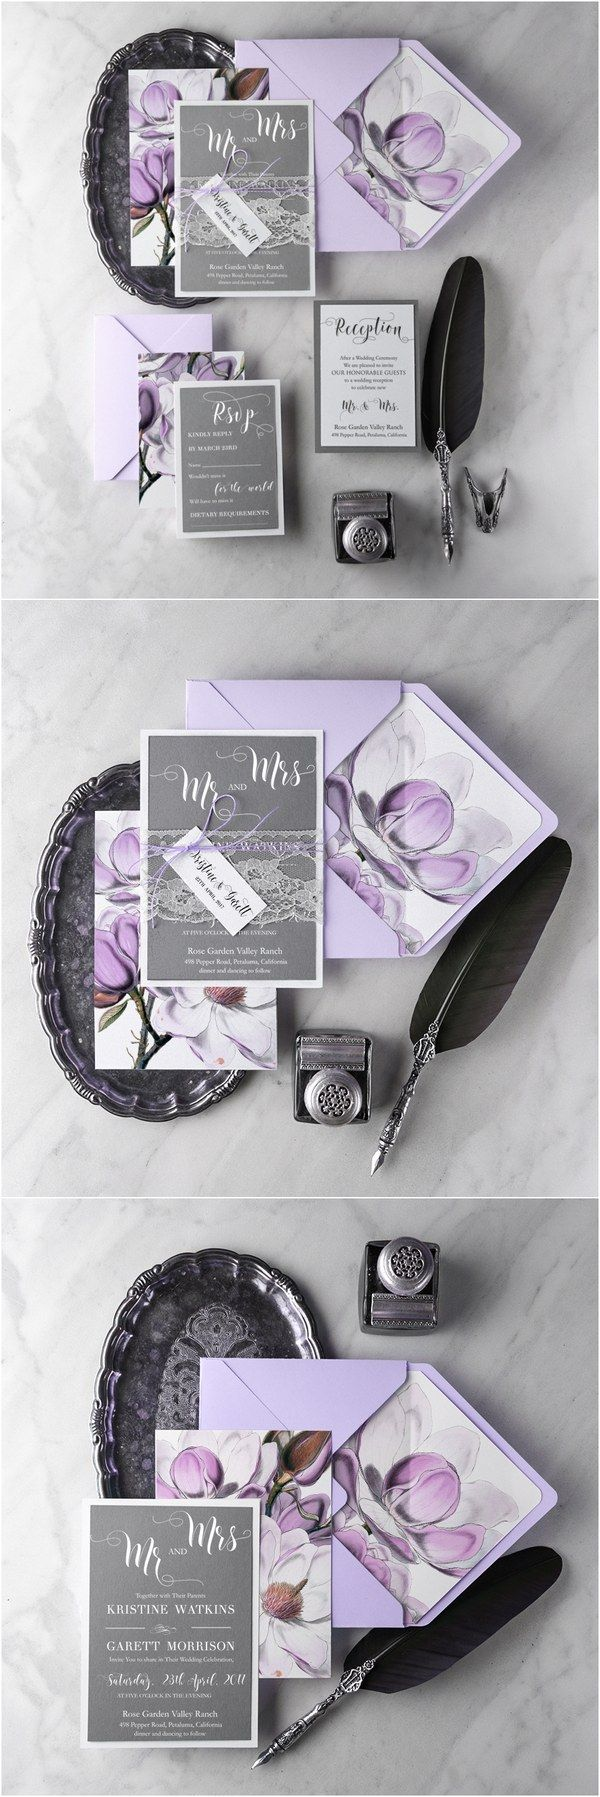 Rustic lavender purple and grey lace wedding invitation kits #rustic #wedding #country